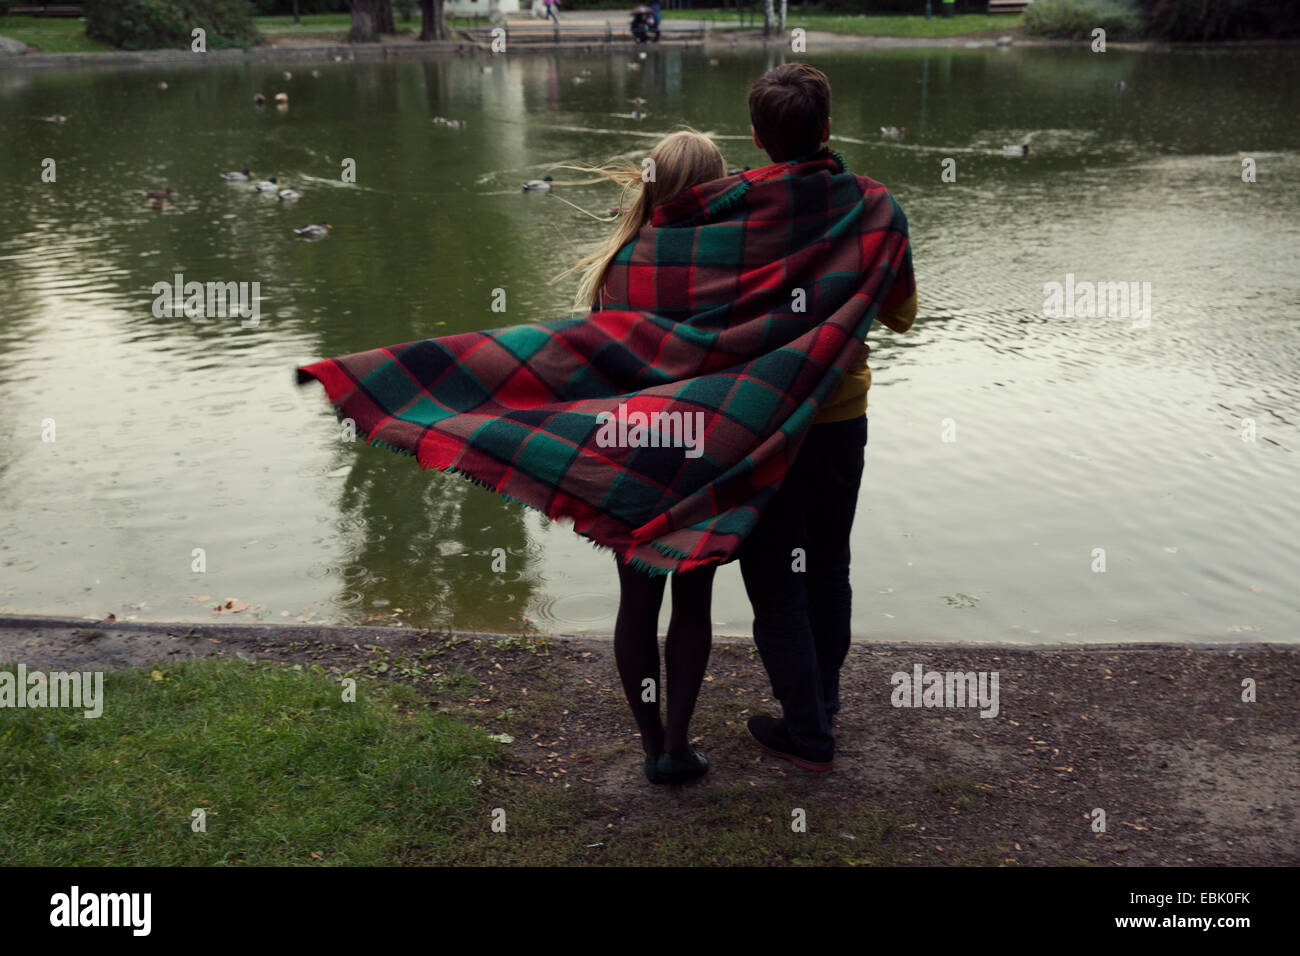 Rear view of young couple wrapped in blanket on park lakeside - Stock Image